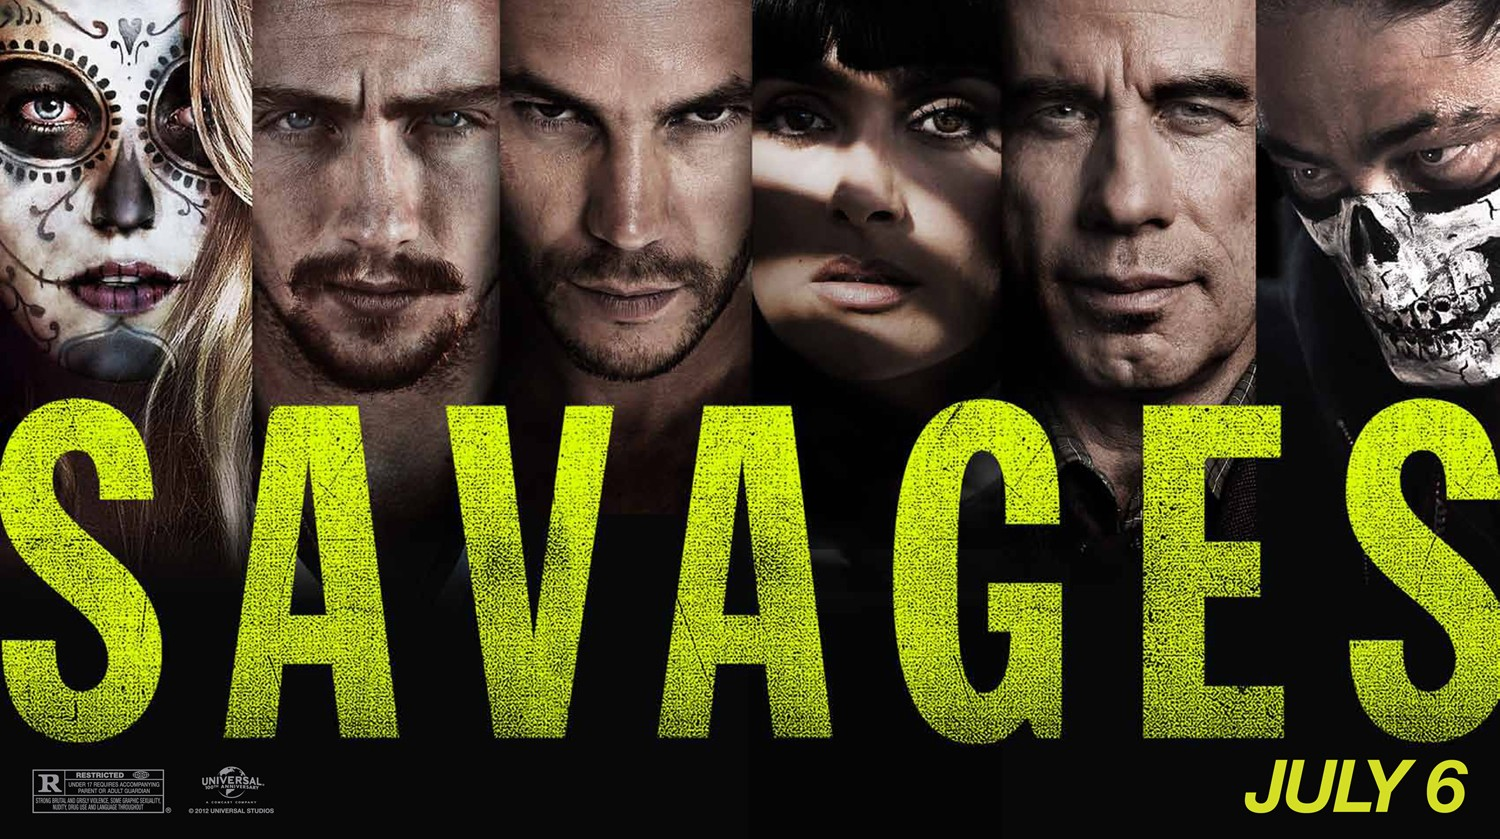 savages-banner-poster.jpg